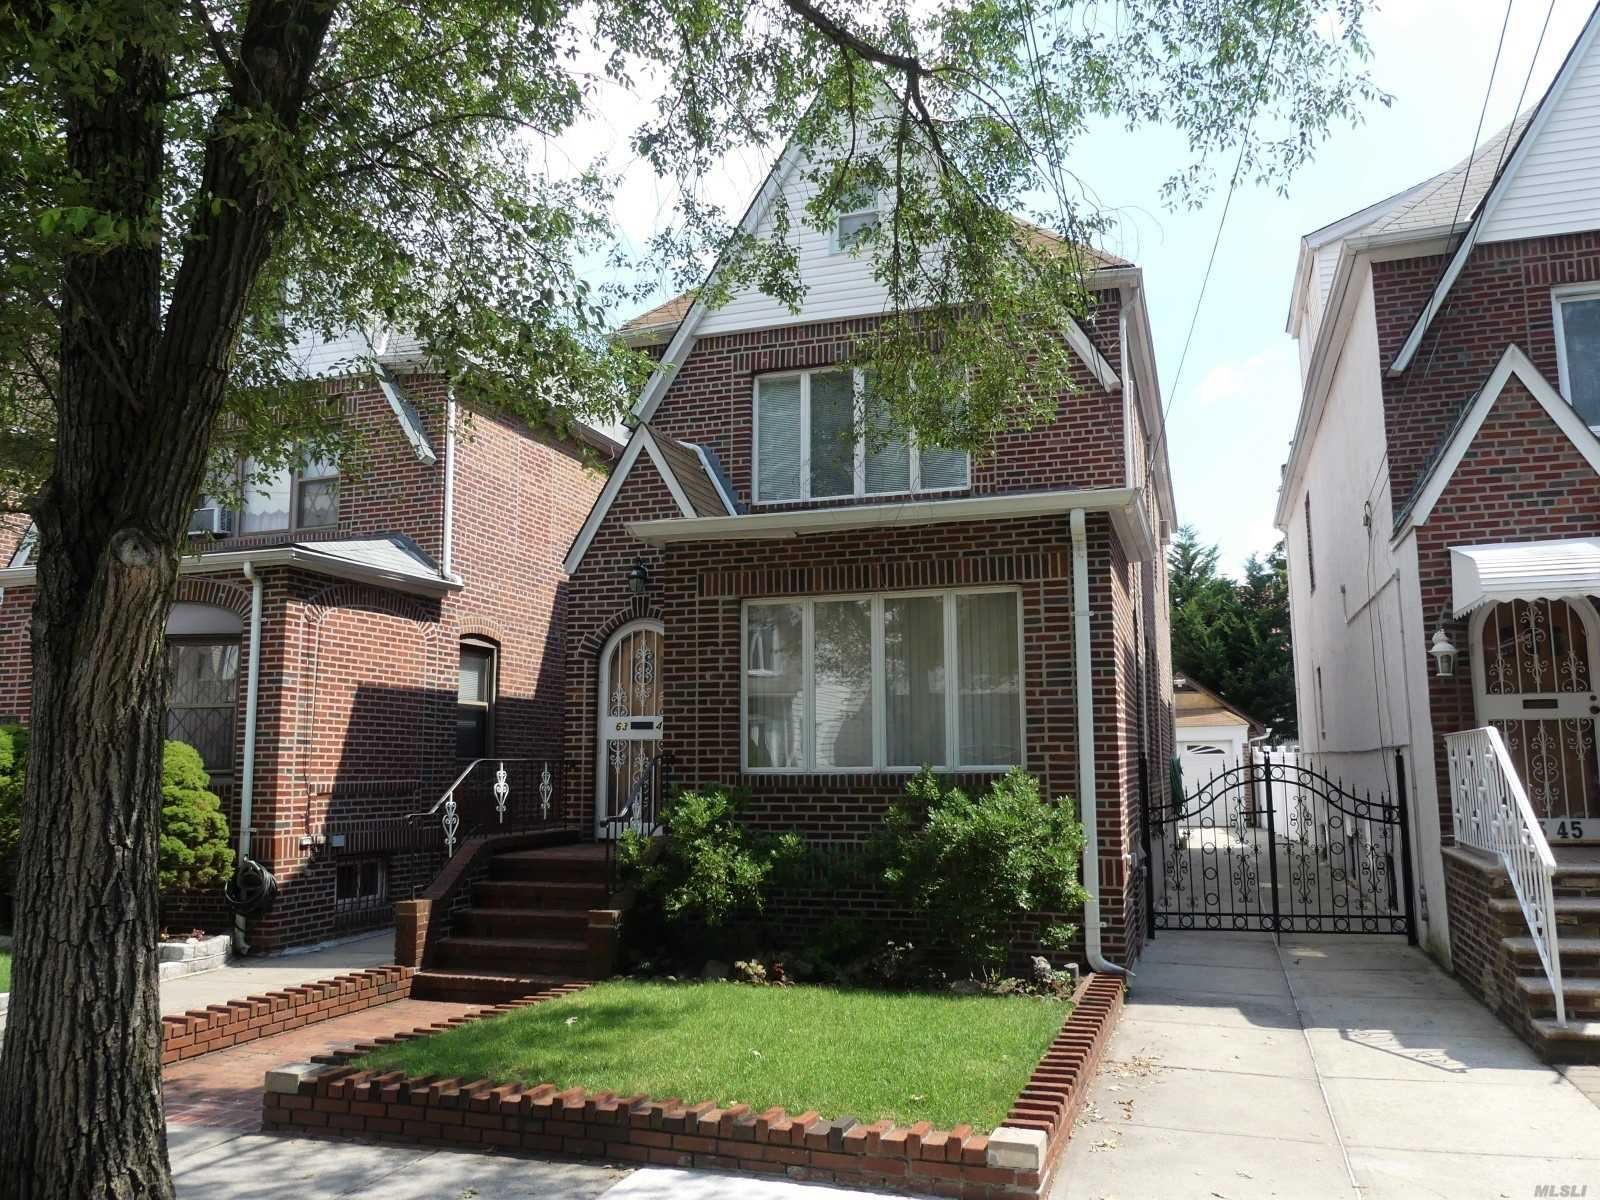 63-43 84th St, Middle Village, NY 11379 - MLS#: 3237398